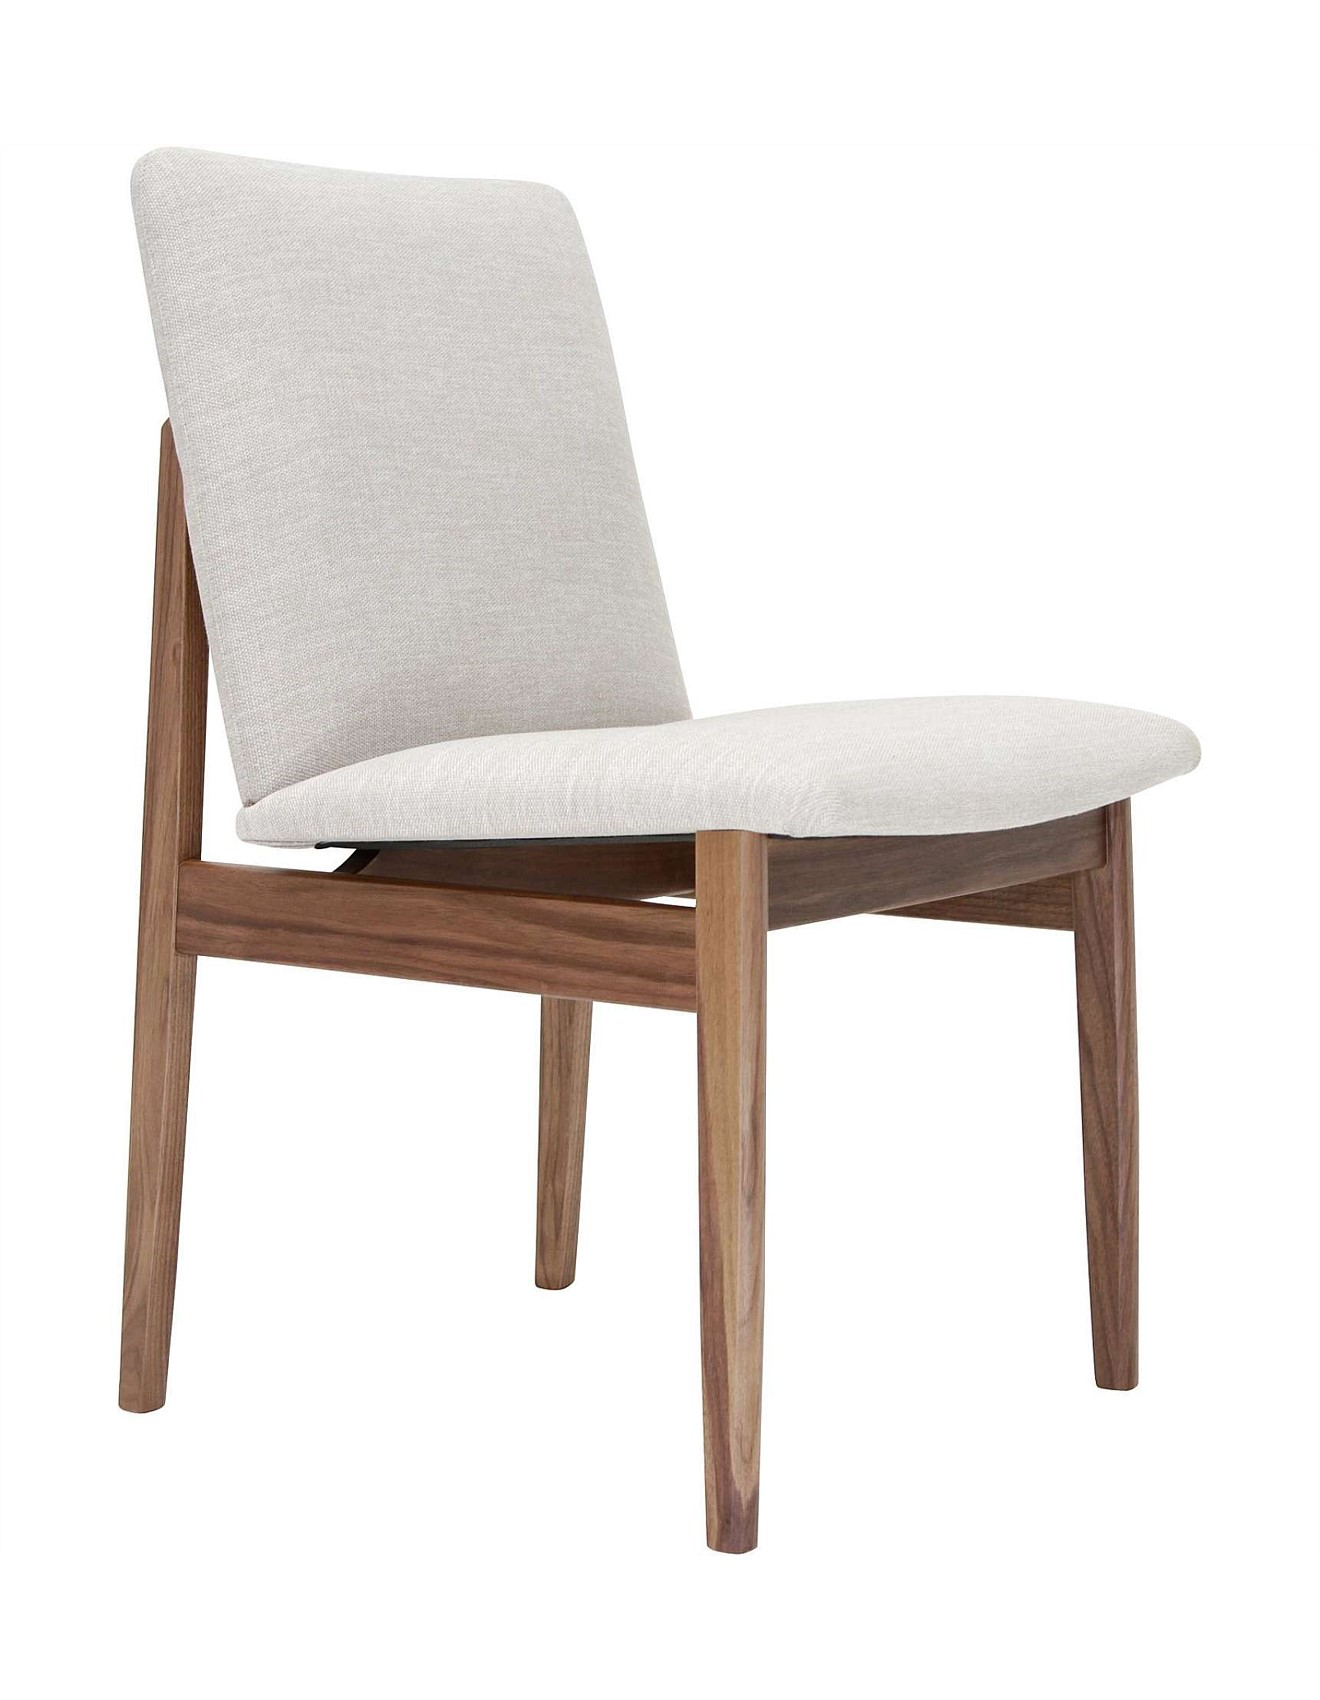 Food Chair Home And Food Bed Bath Kitchen And Dining David Jones